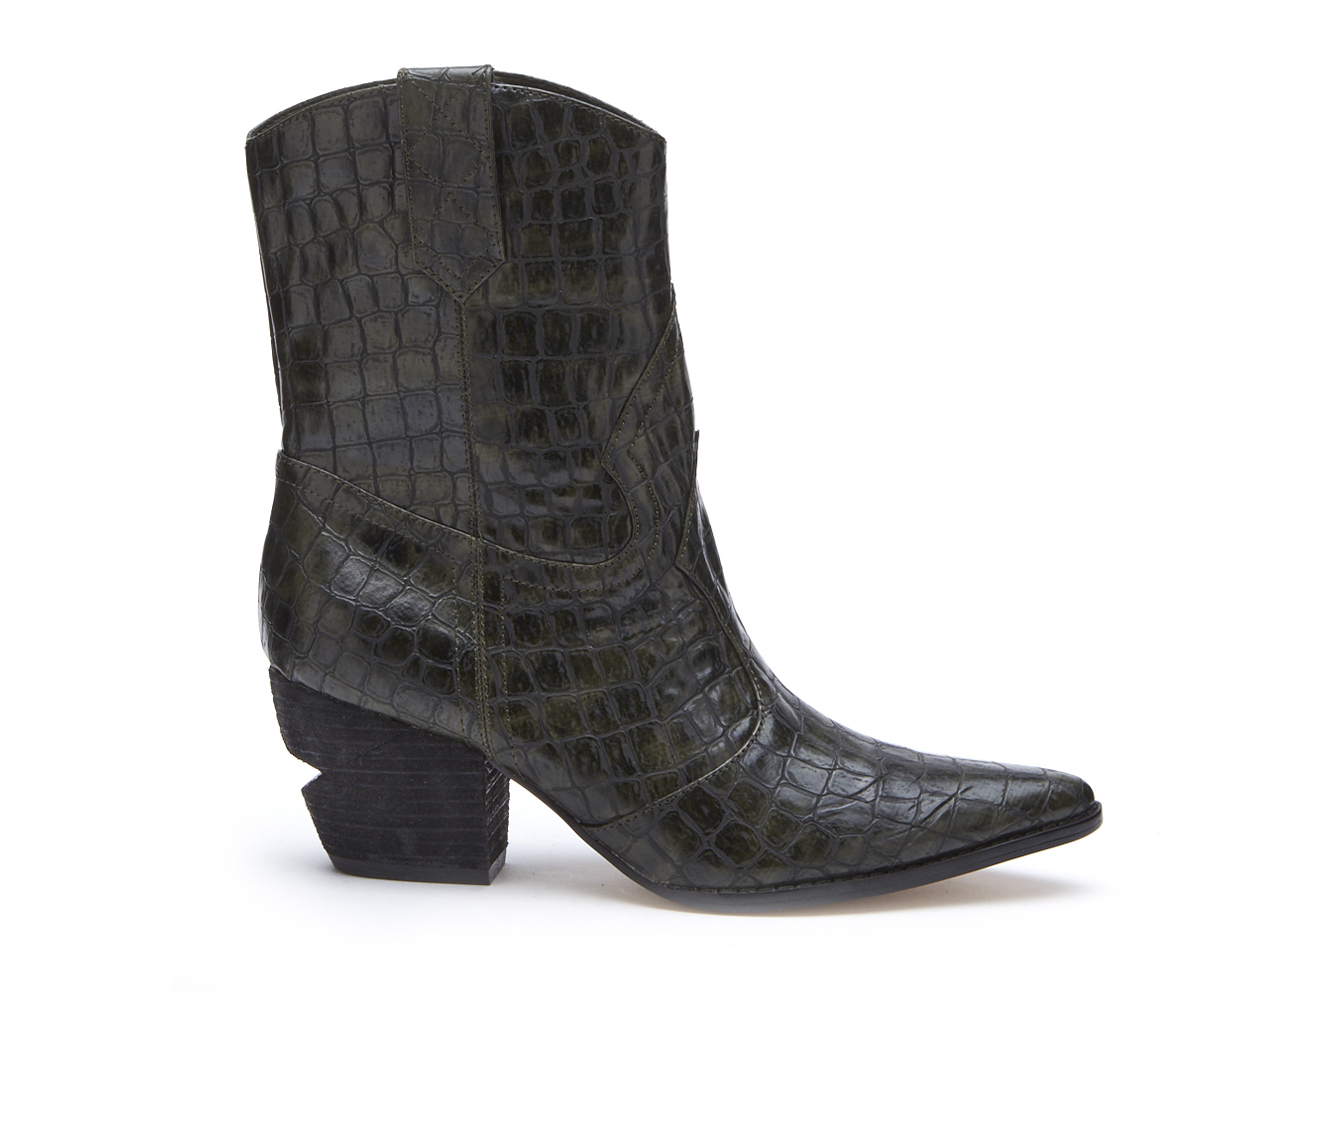 Coconuts After Dark Women's Boot (Green Faux Leather)